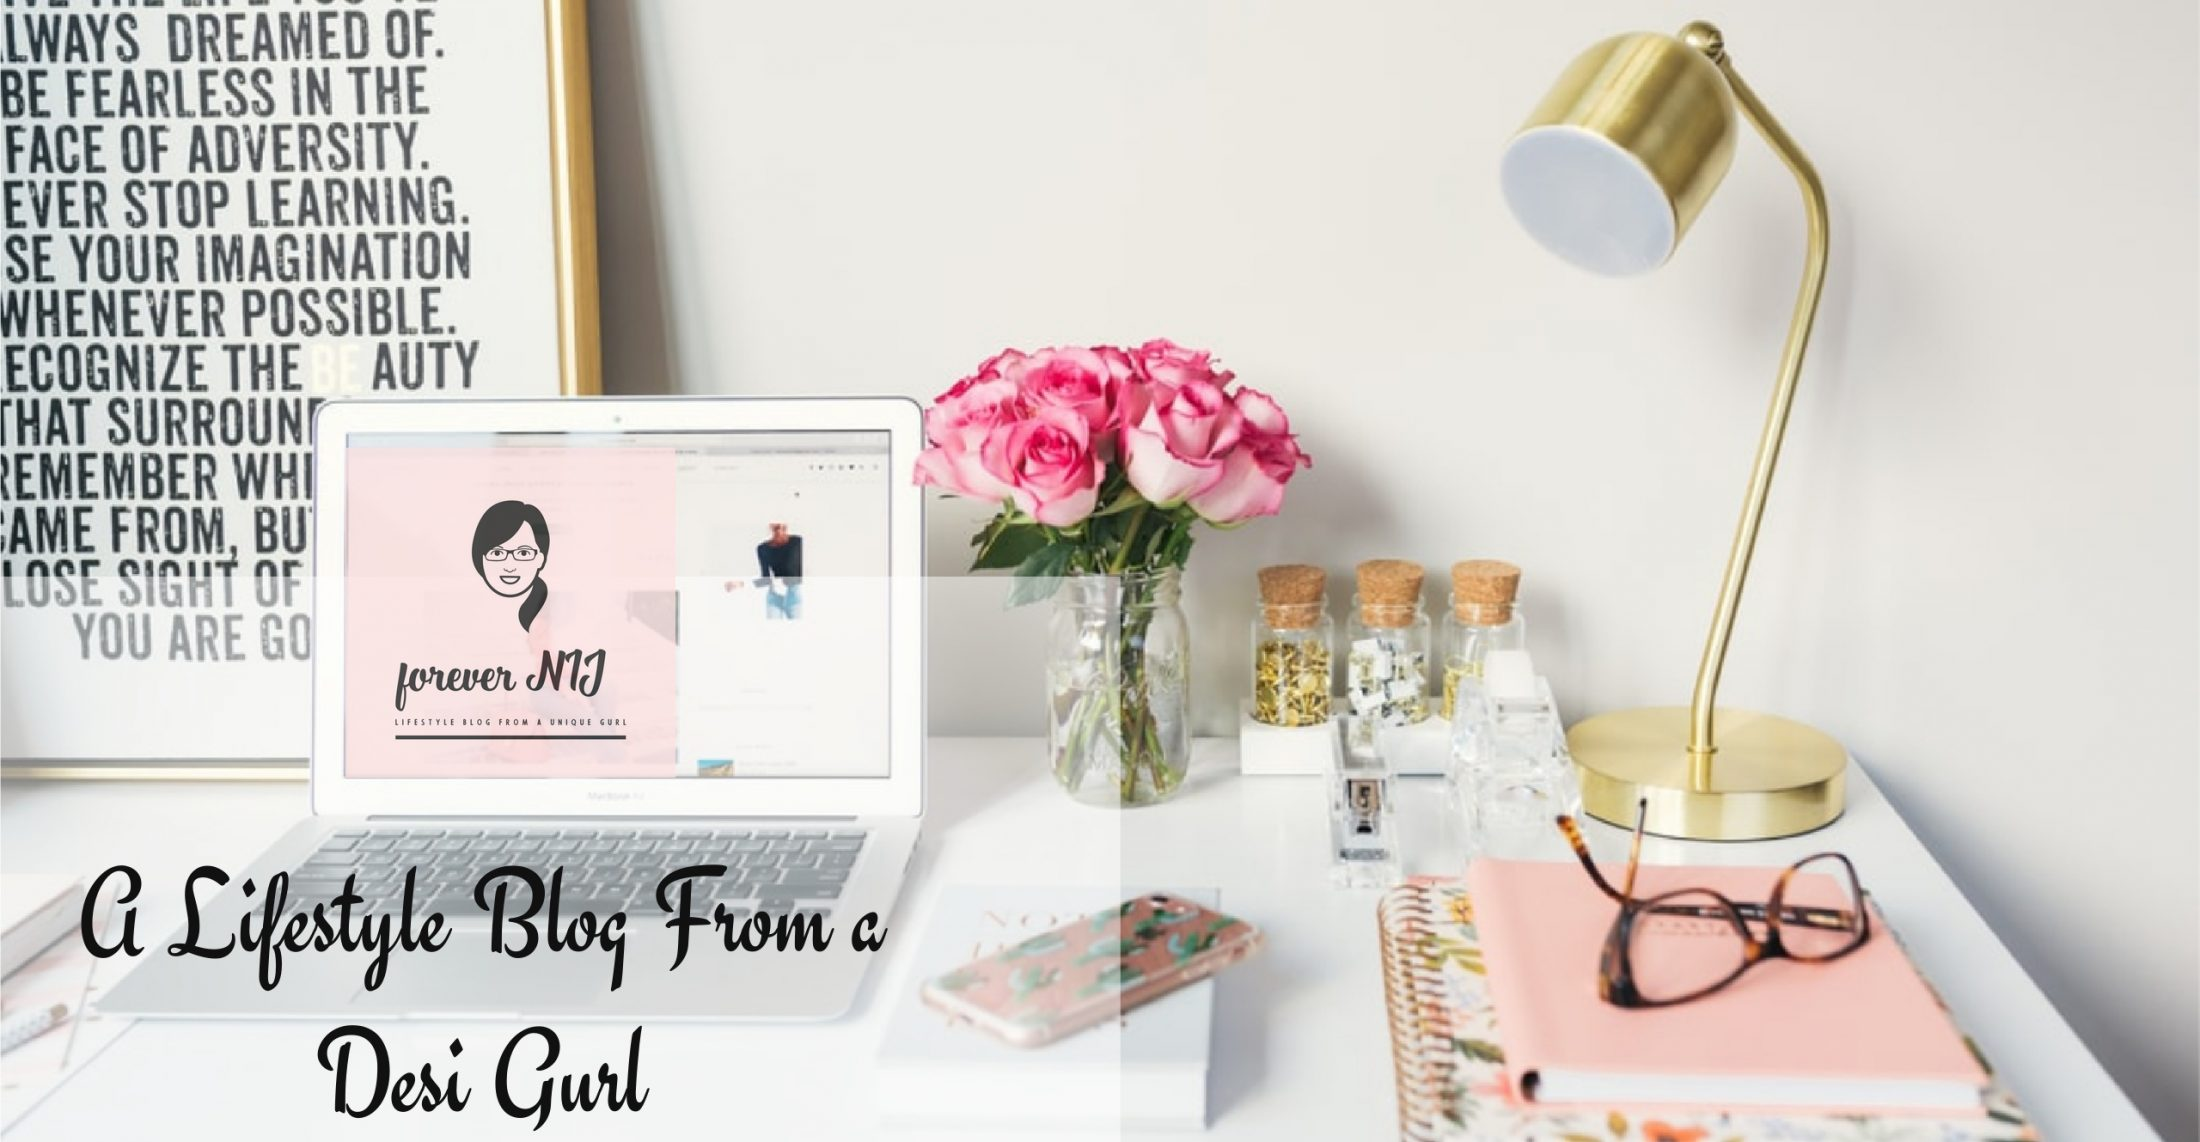 Forever Nij: A Lifestyle Blog From a Desi Gurl